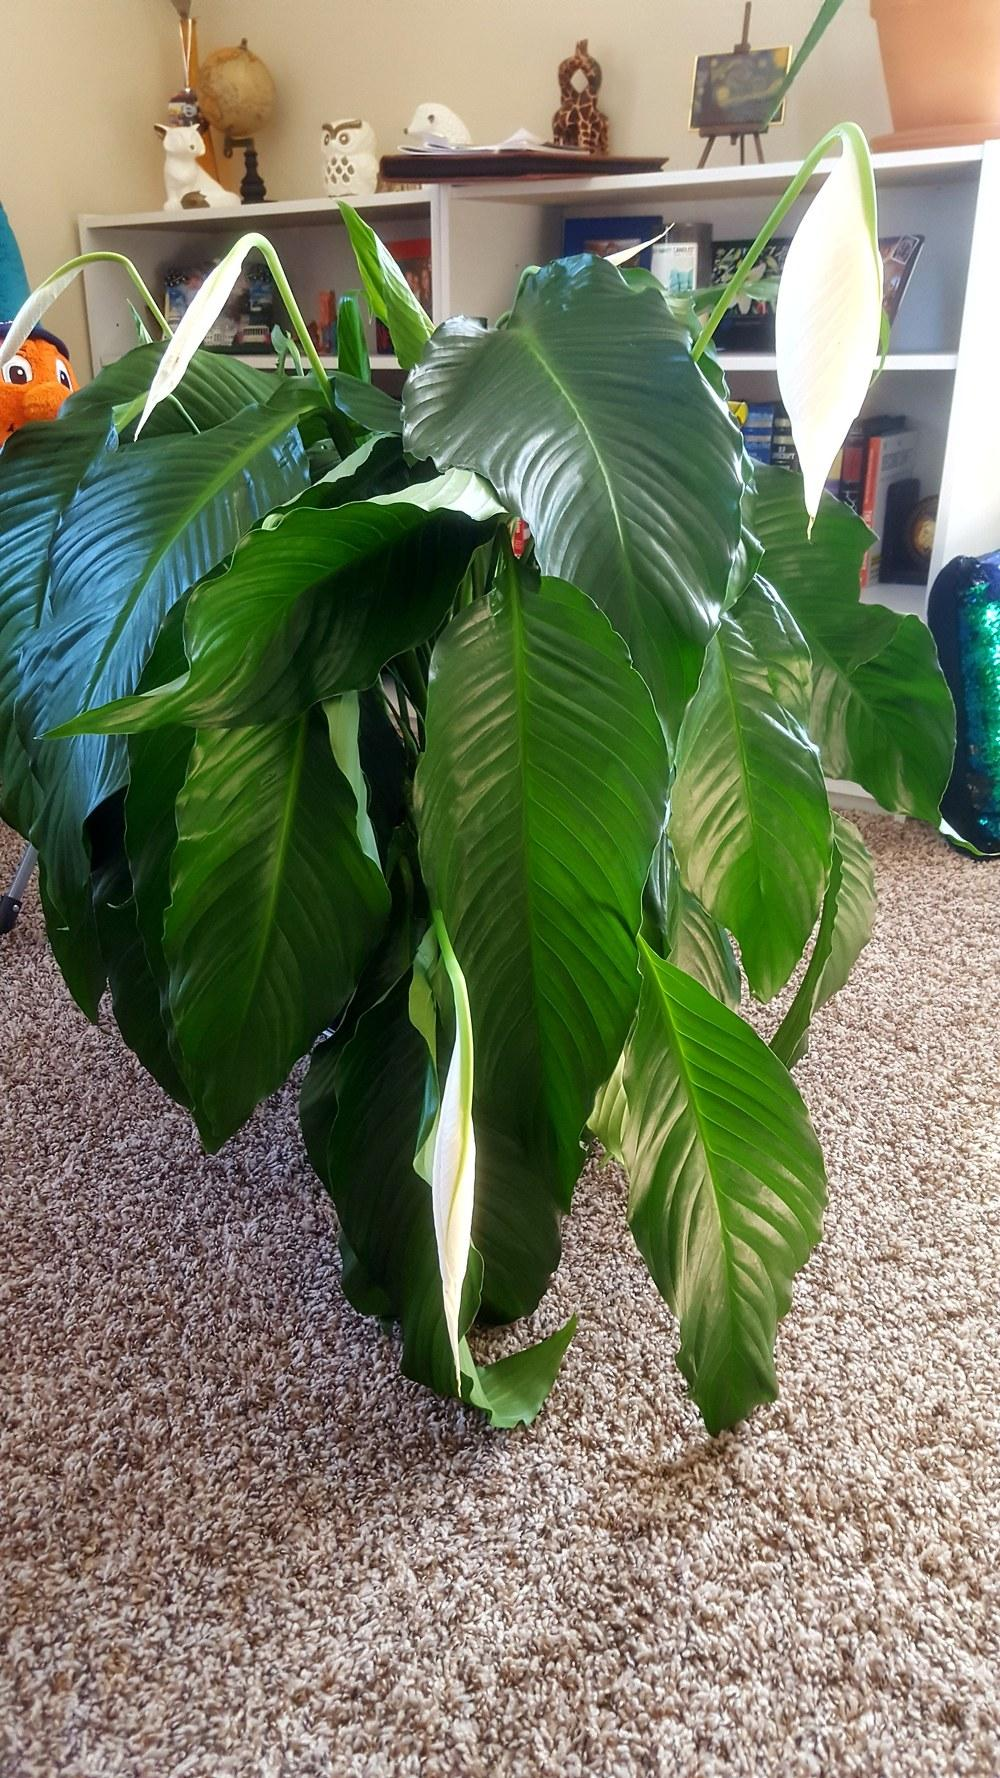 Ask a question forum peace lily help garden thumb of 2017 02 19nygardener2017f330c9 izmirmasajfo